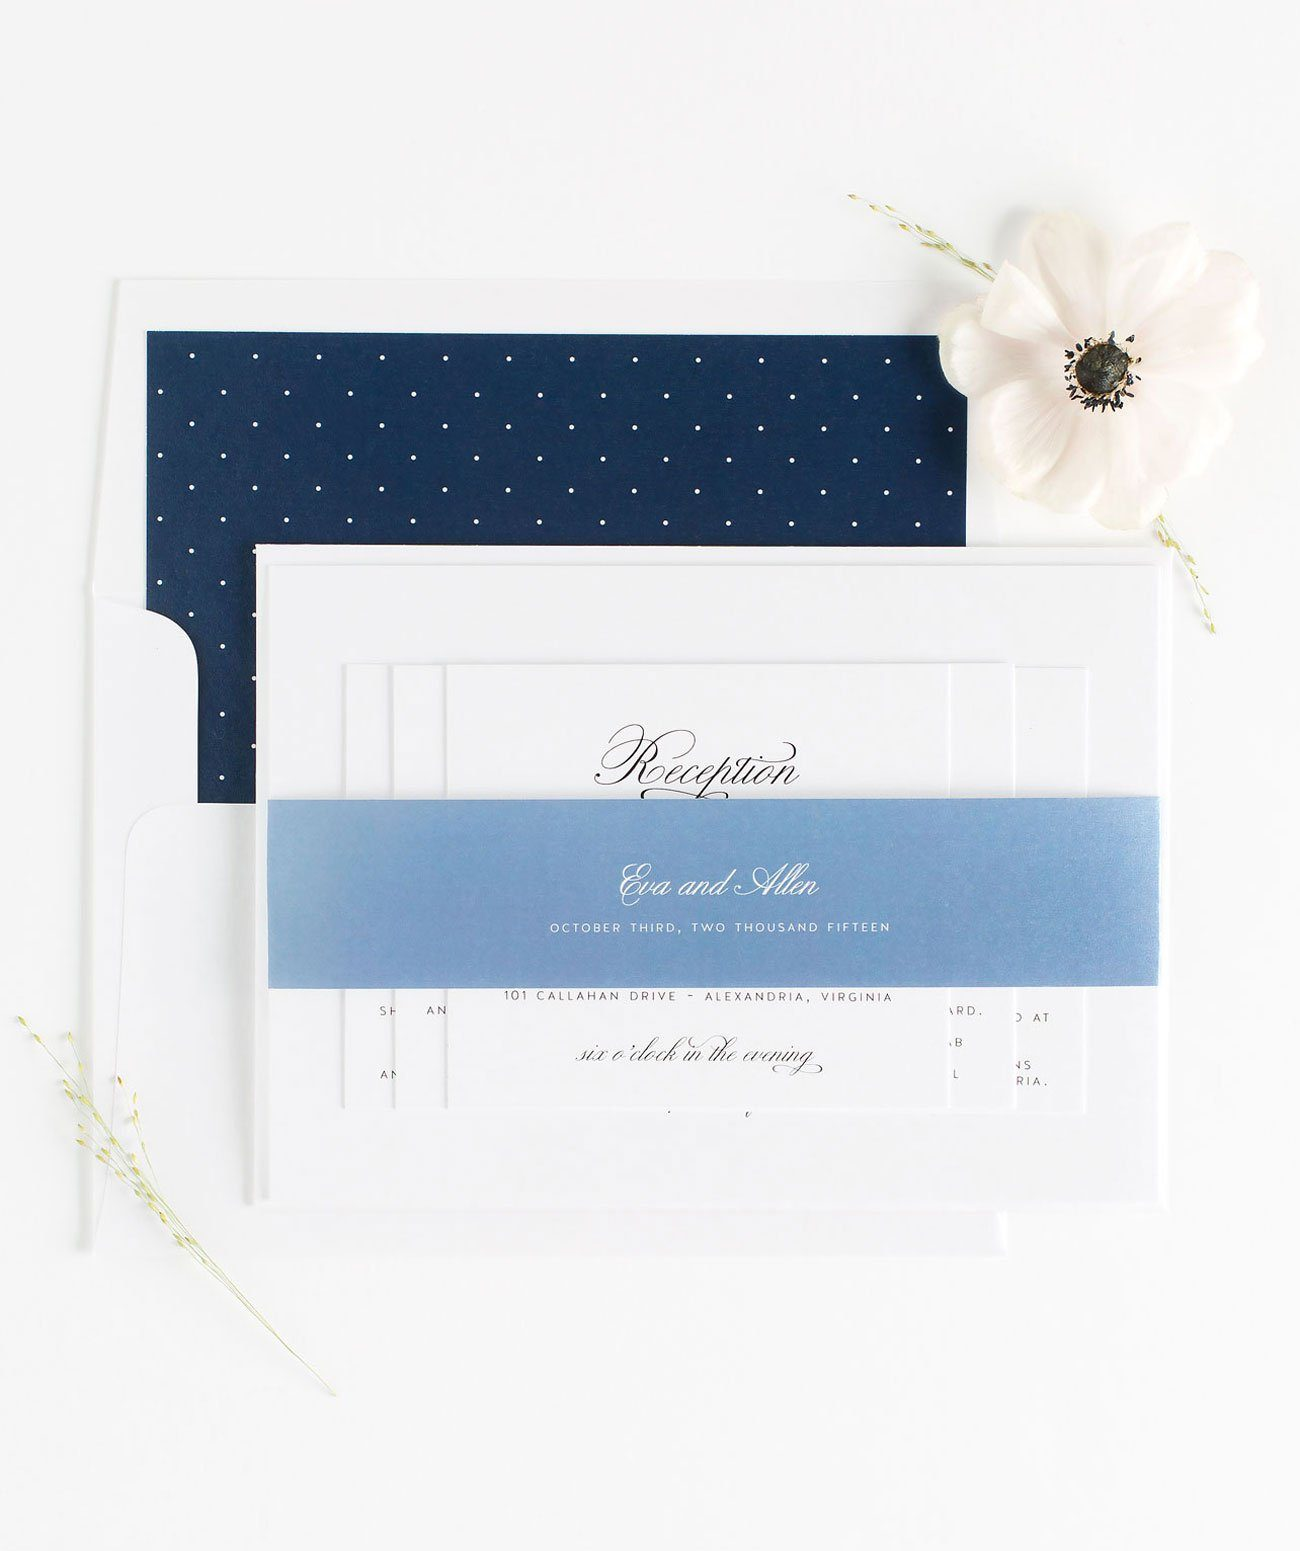 Classic Wedding Invitations in Navy Blue and Dusty Blue